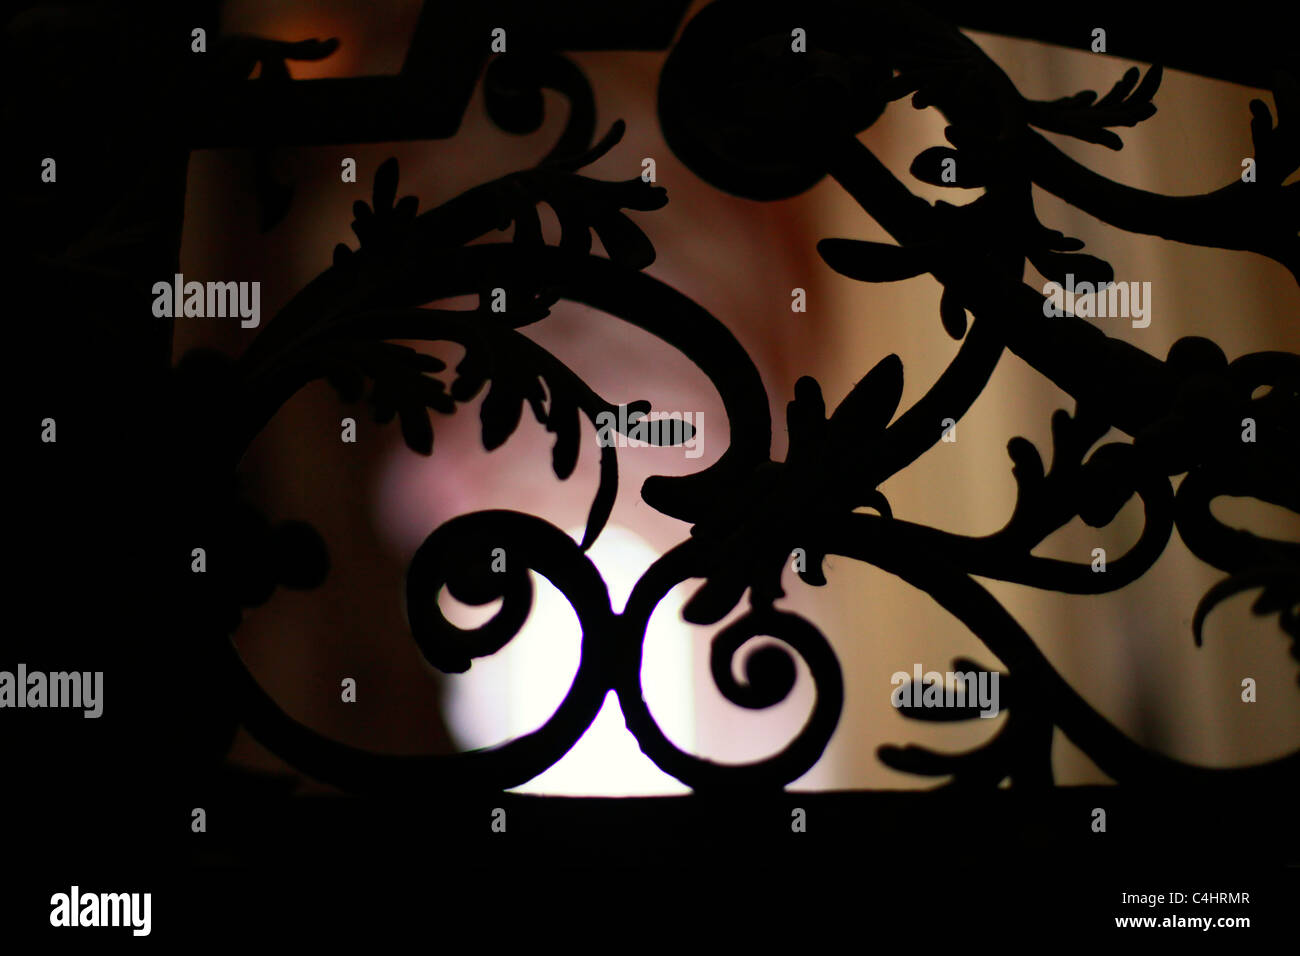 Wrought Iron Fence Ornament Inside In Thomaskirche Saint Thomas Stock Photo Alamy